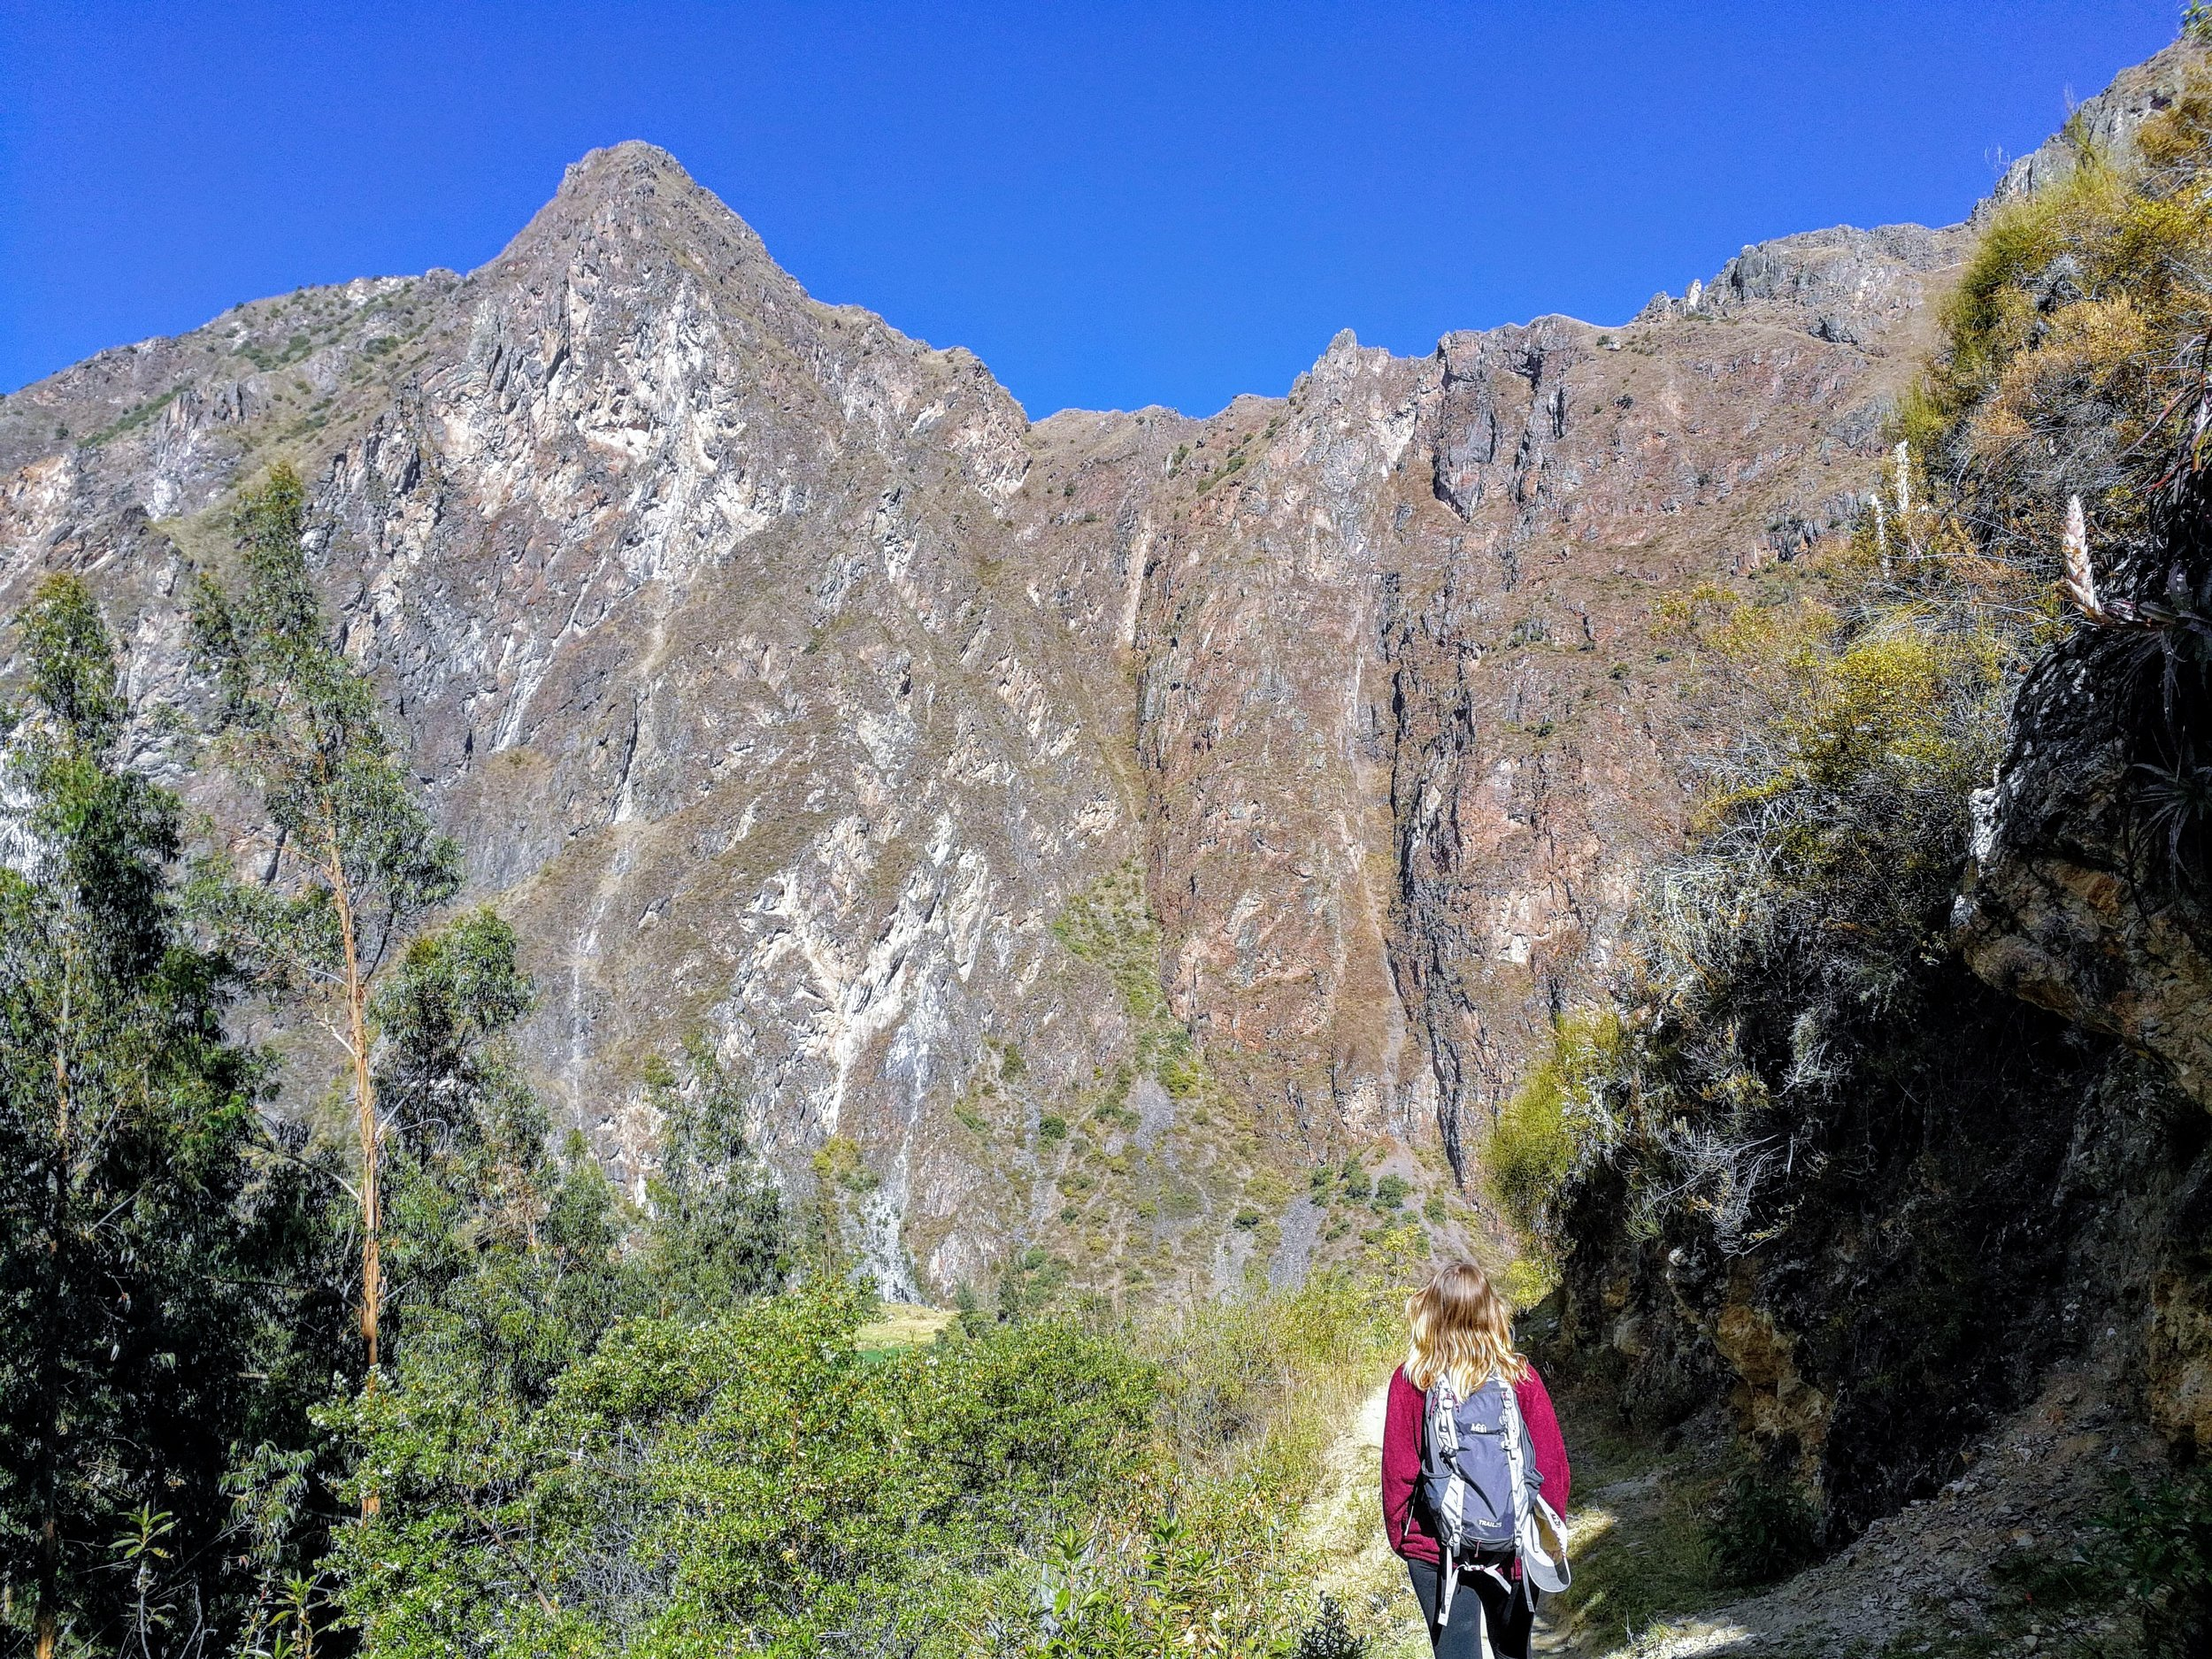 The hike down from Pumamarca to Ollantaytambo through the Andes is breathtakingly scenic.